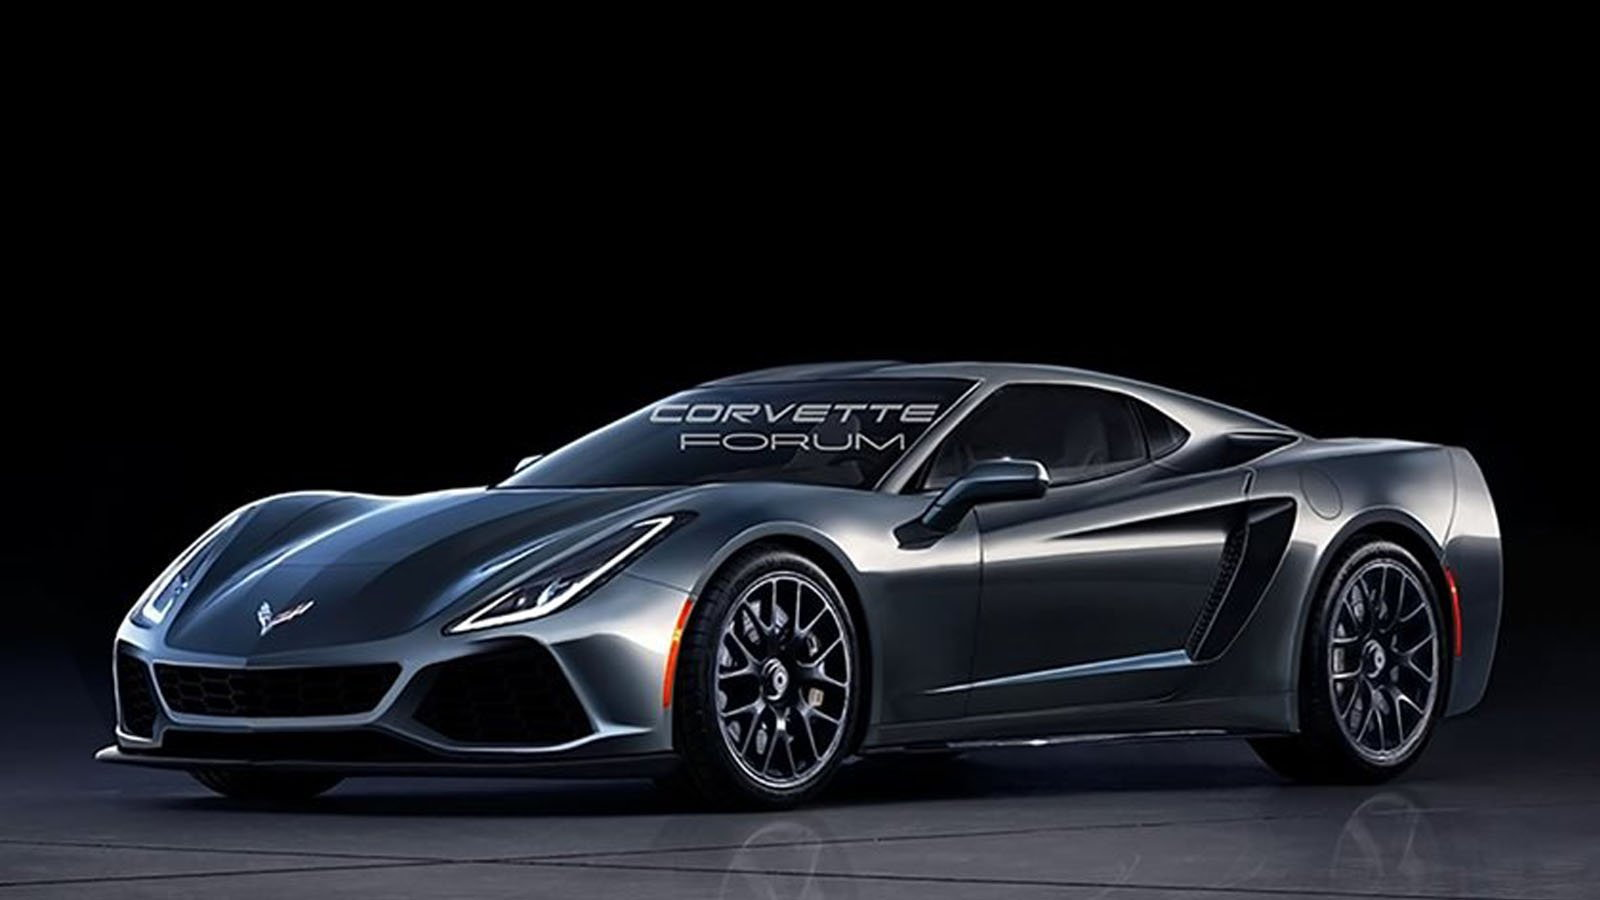 2020 Mid-Engine Corvette: What We Know So Far